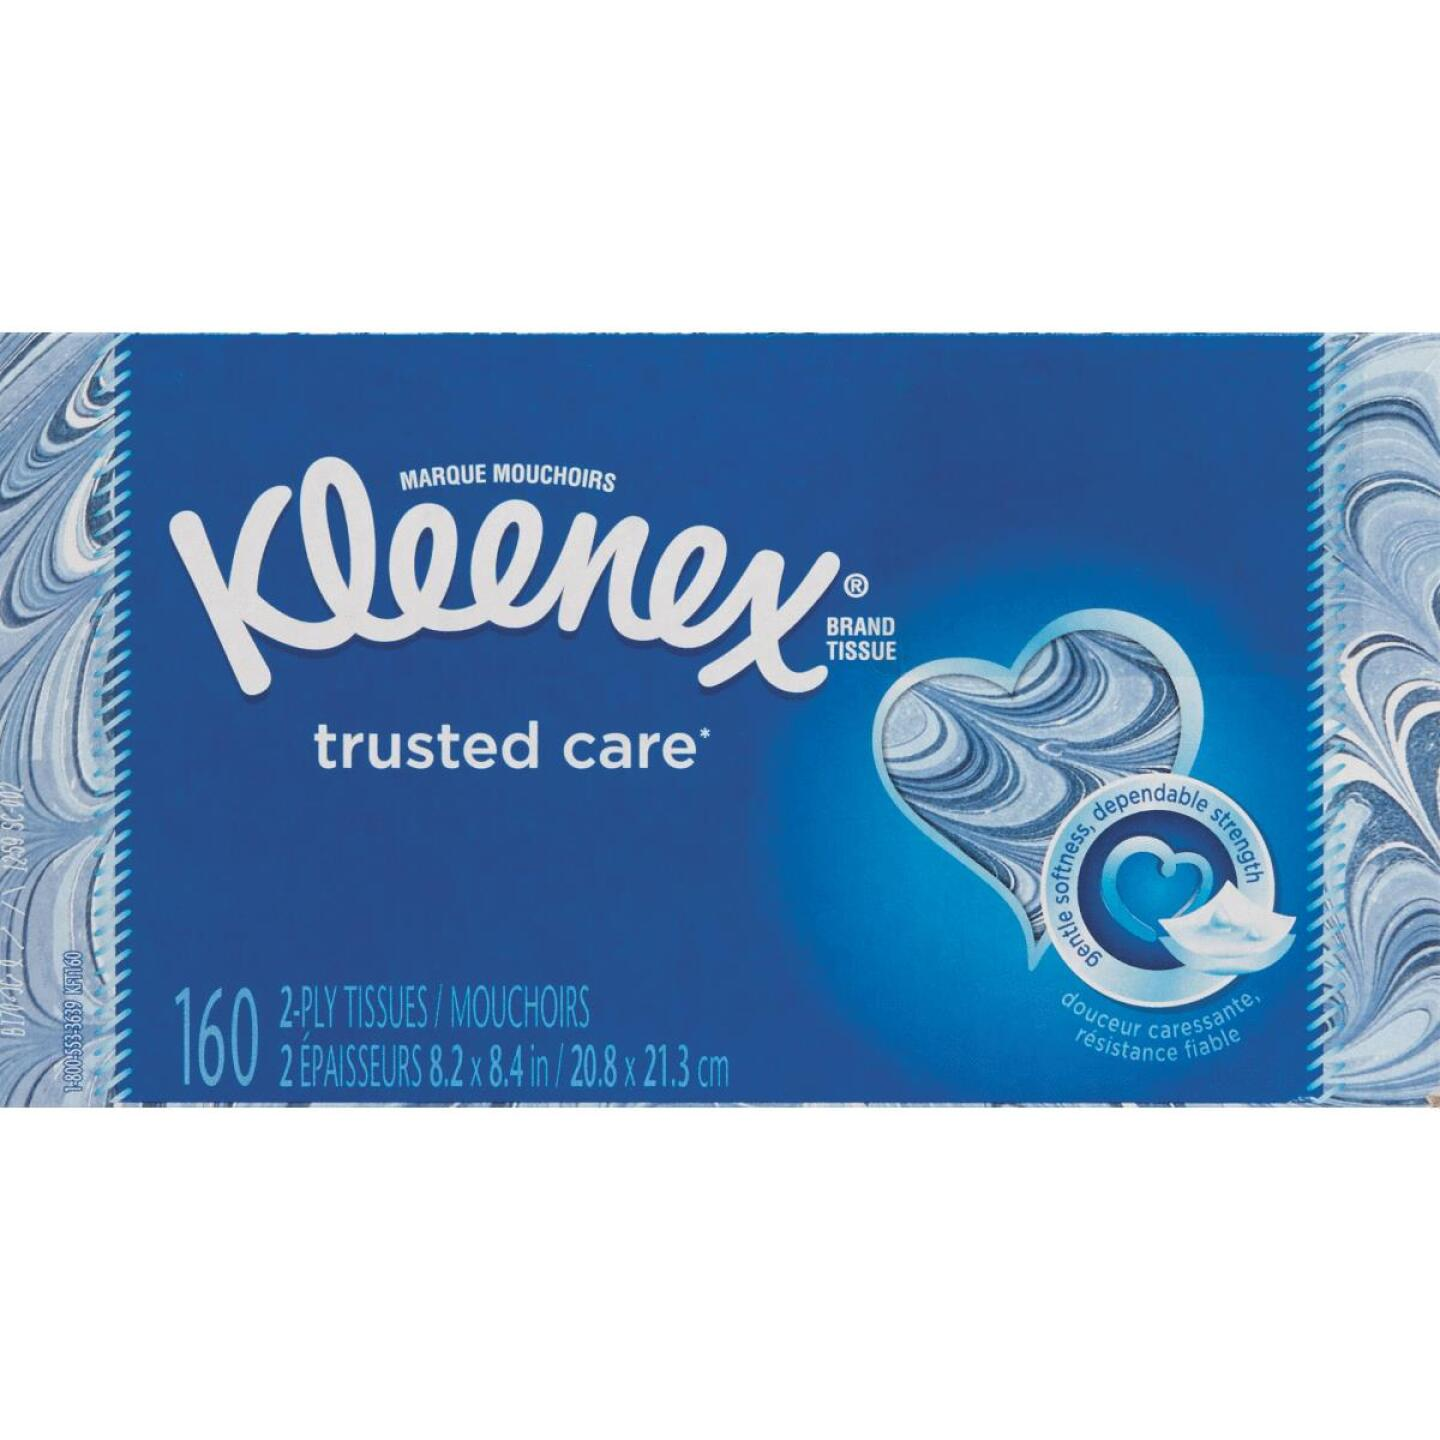 Kleenex Trusted Care 144 Count 2-Ply White Facial Tissue Image 1